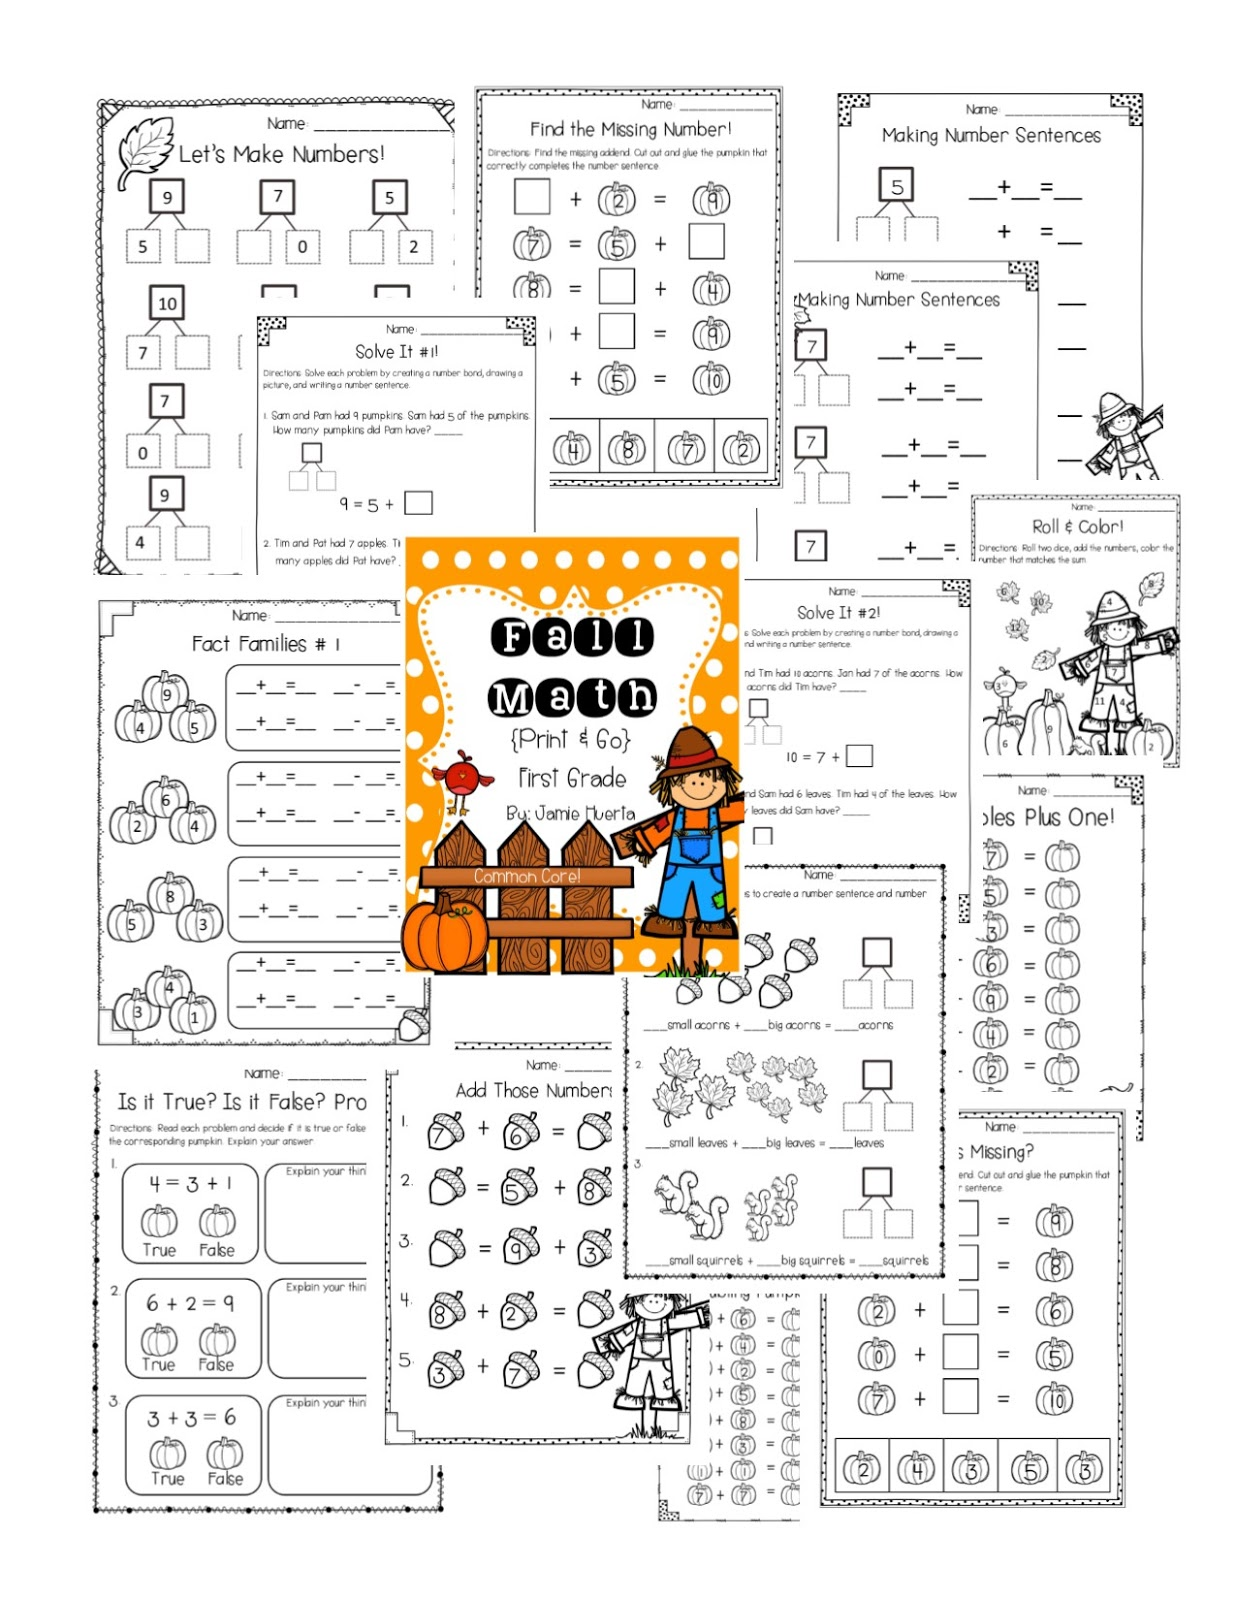 http://www.teacherspayteachers.com/Product/Fall-Math-First-Grade-Print-Go-1430185